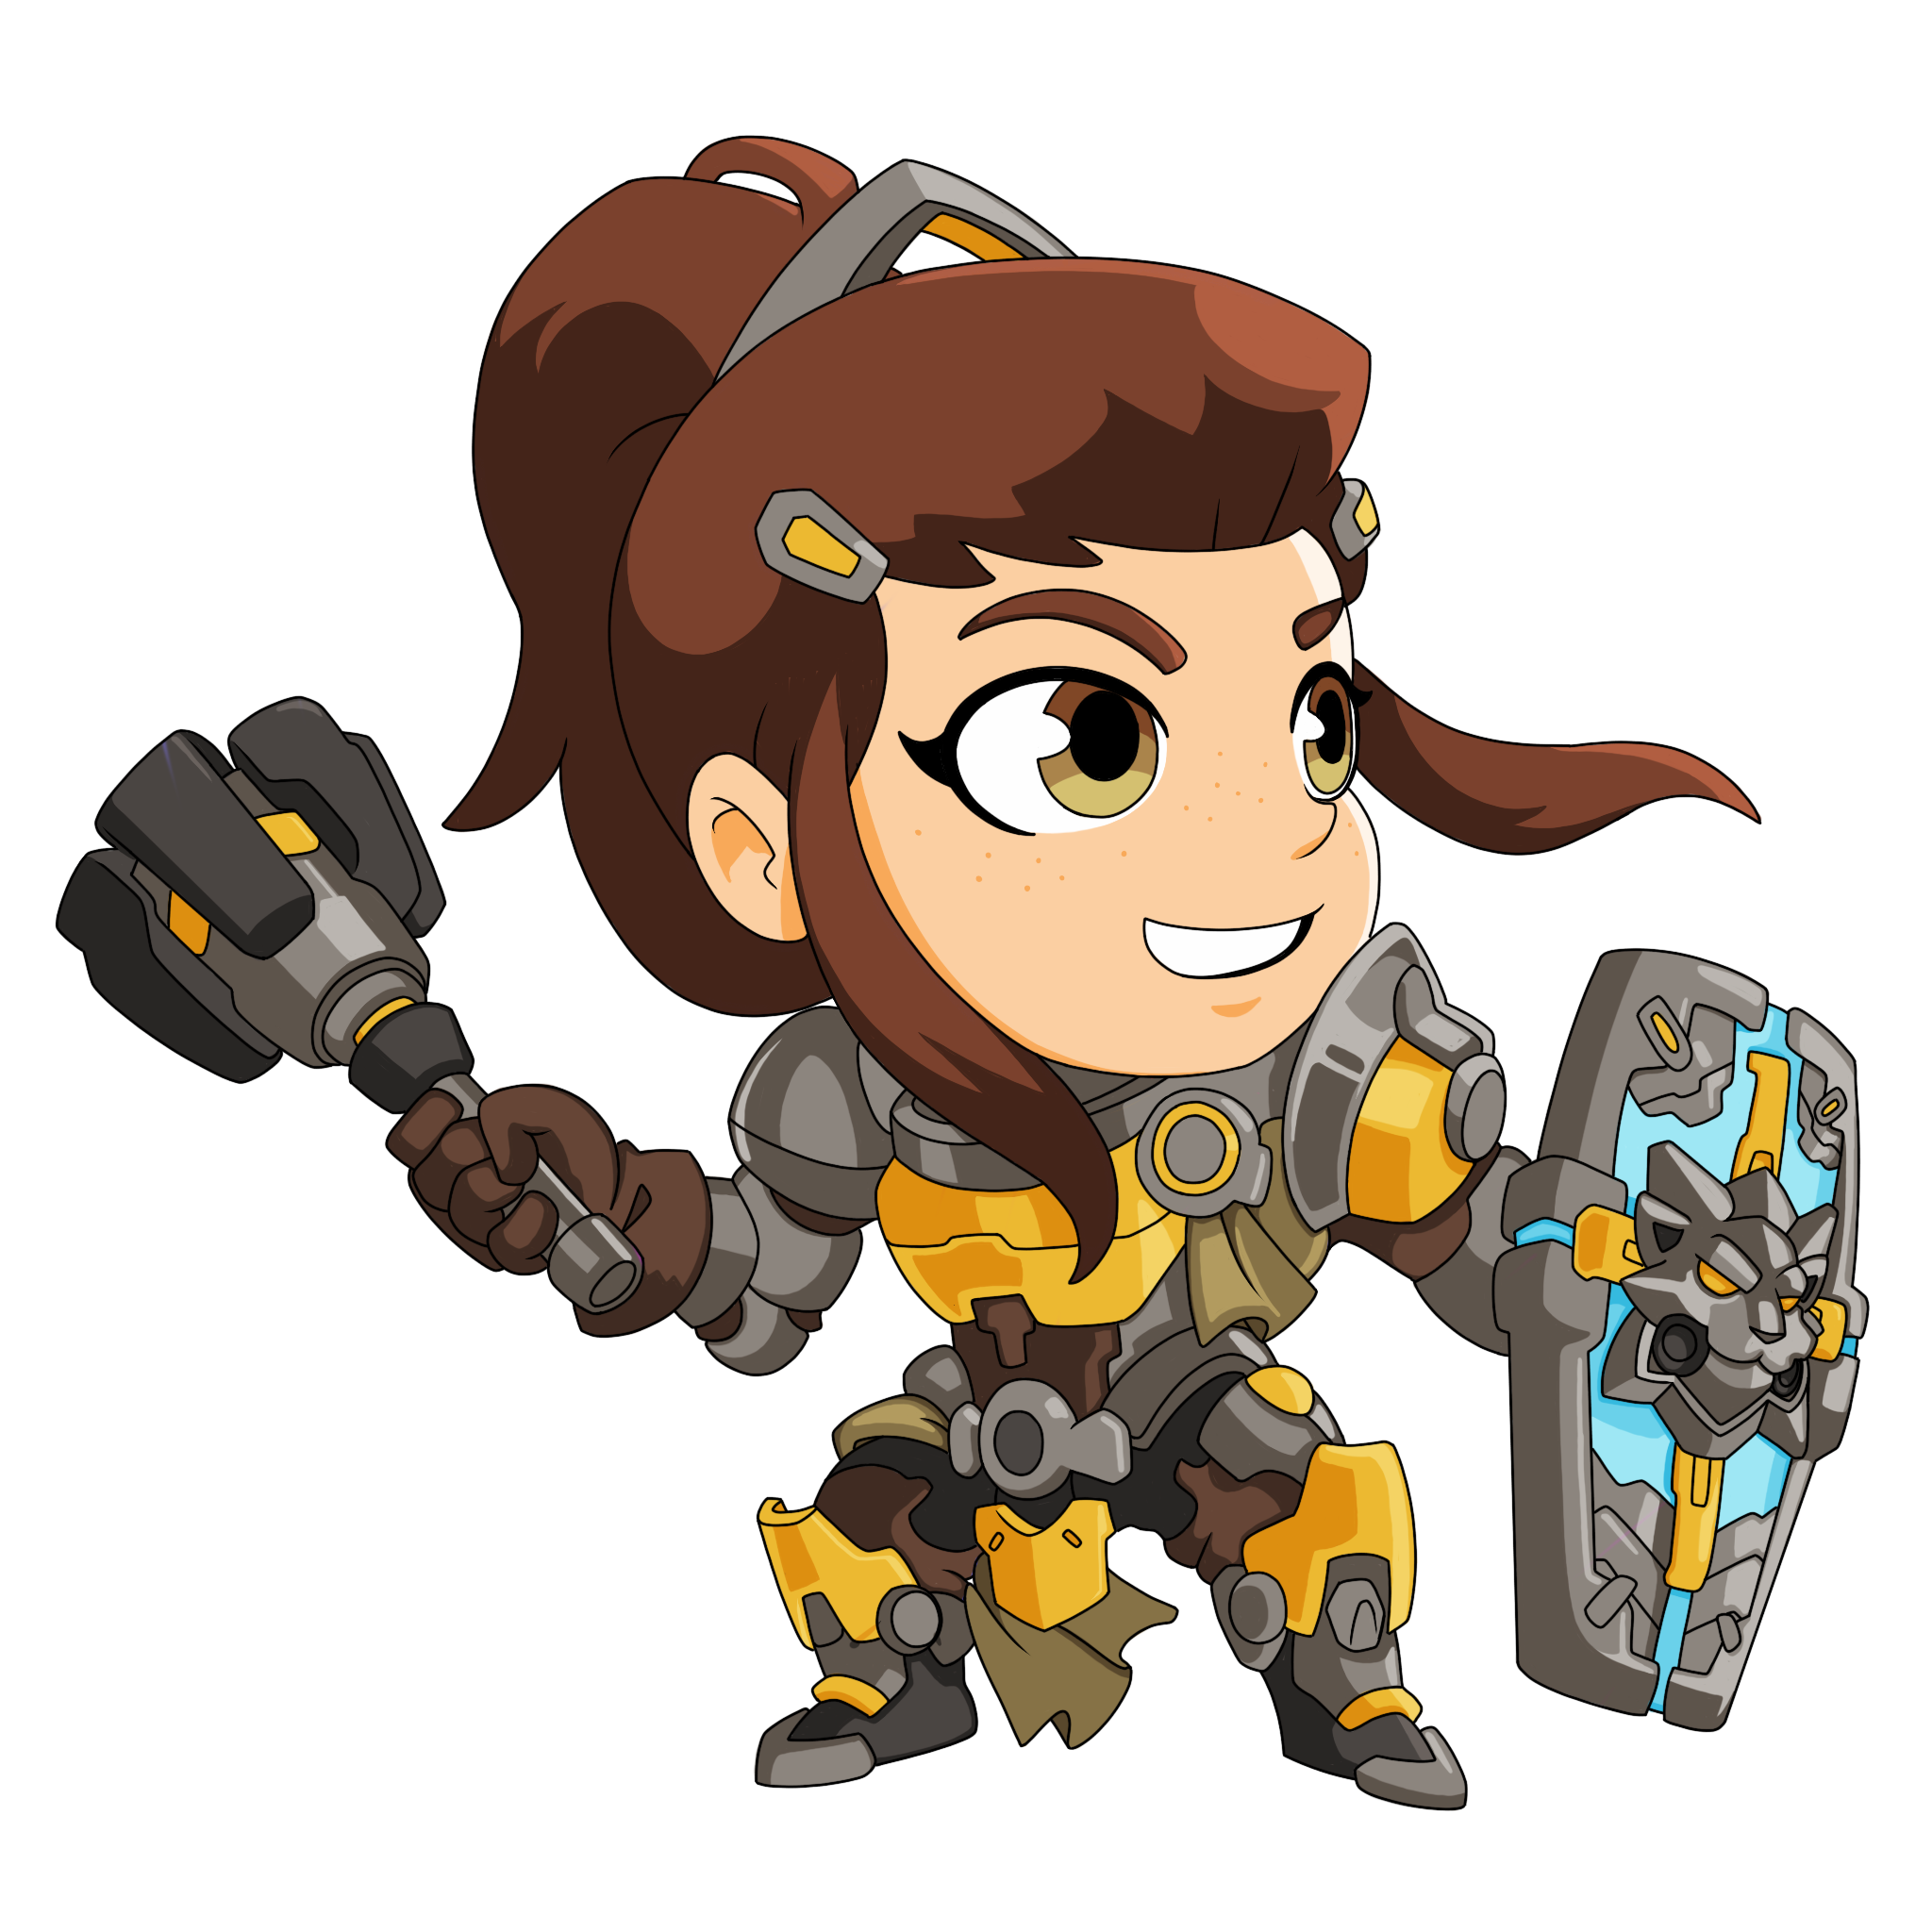 Brigitte Cute Sprays (brigetty? spigette? bridget?).